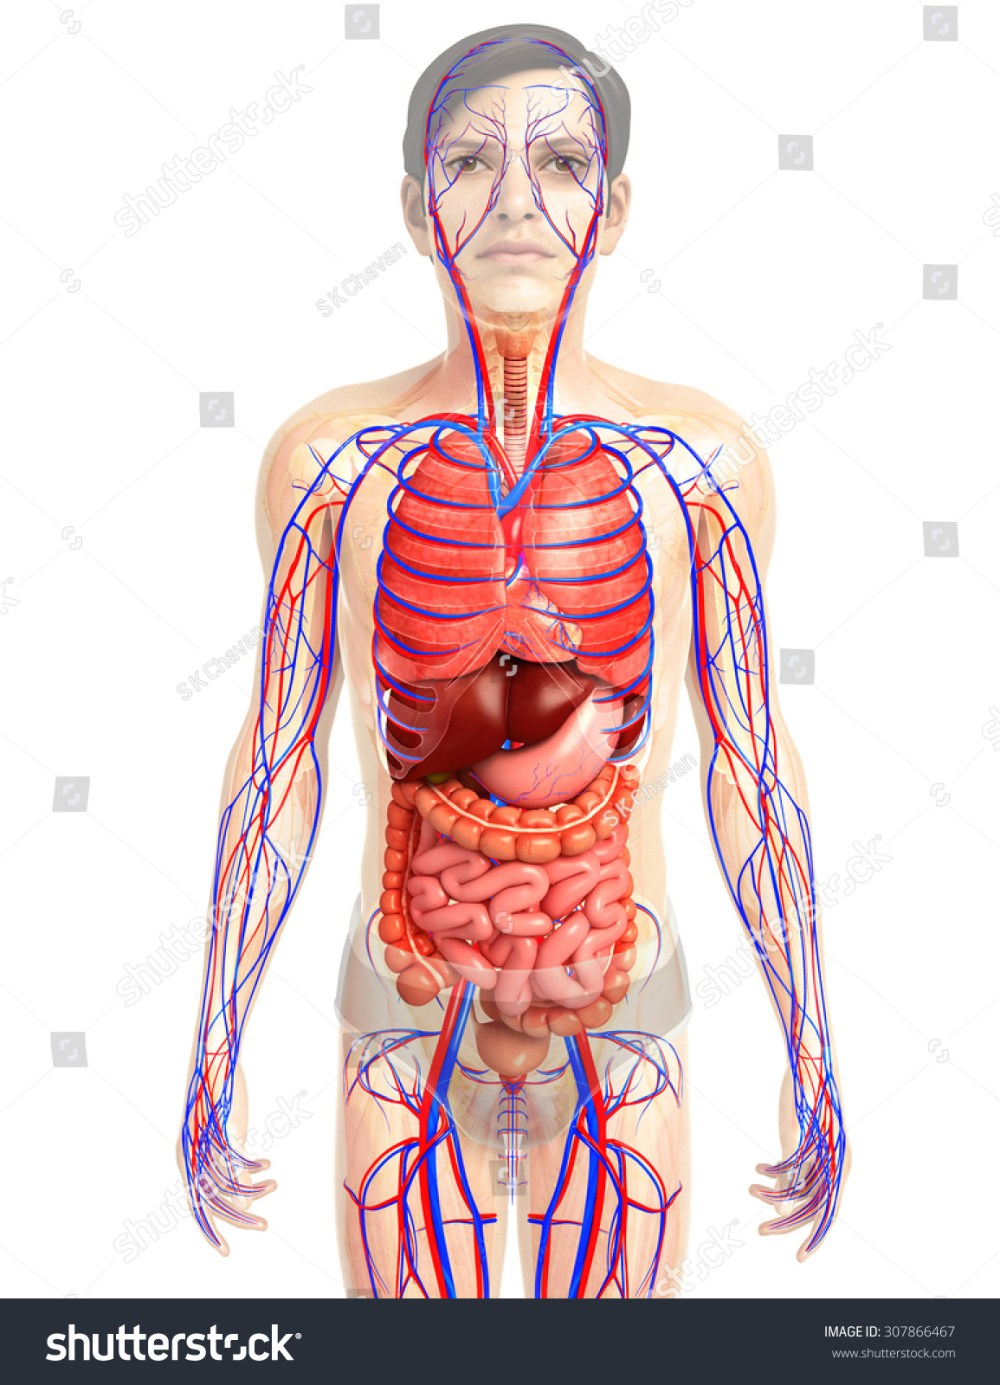 medium resolution of 3d rendered illustration of male digestive system illustration